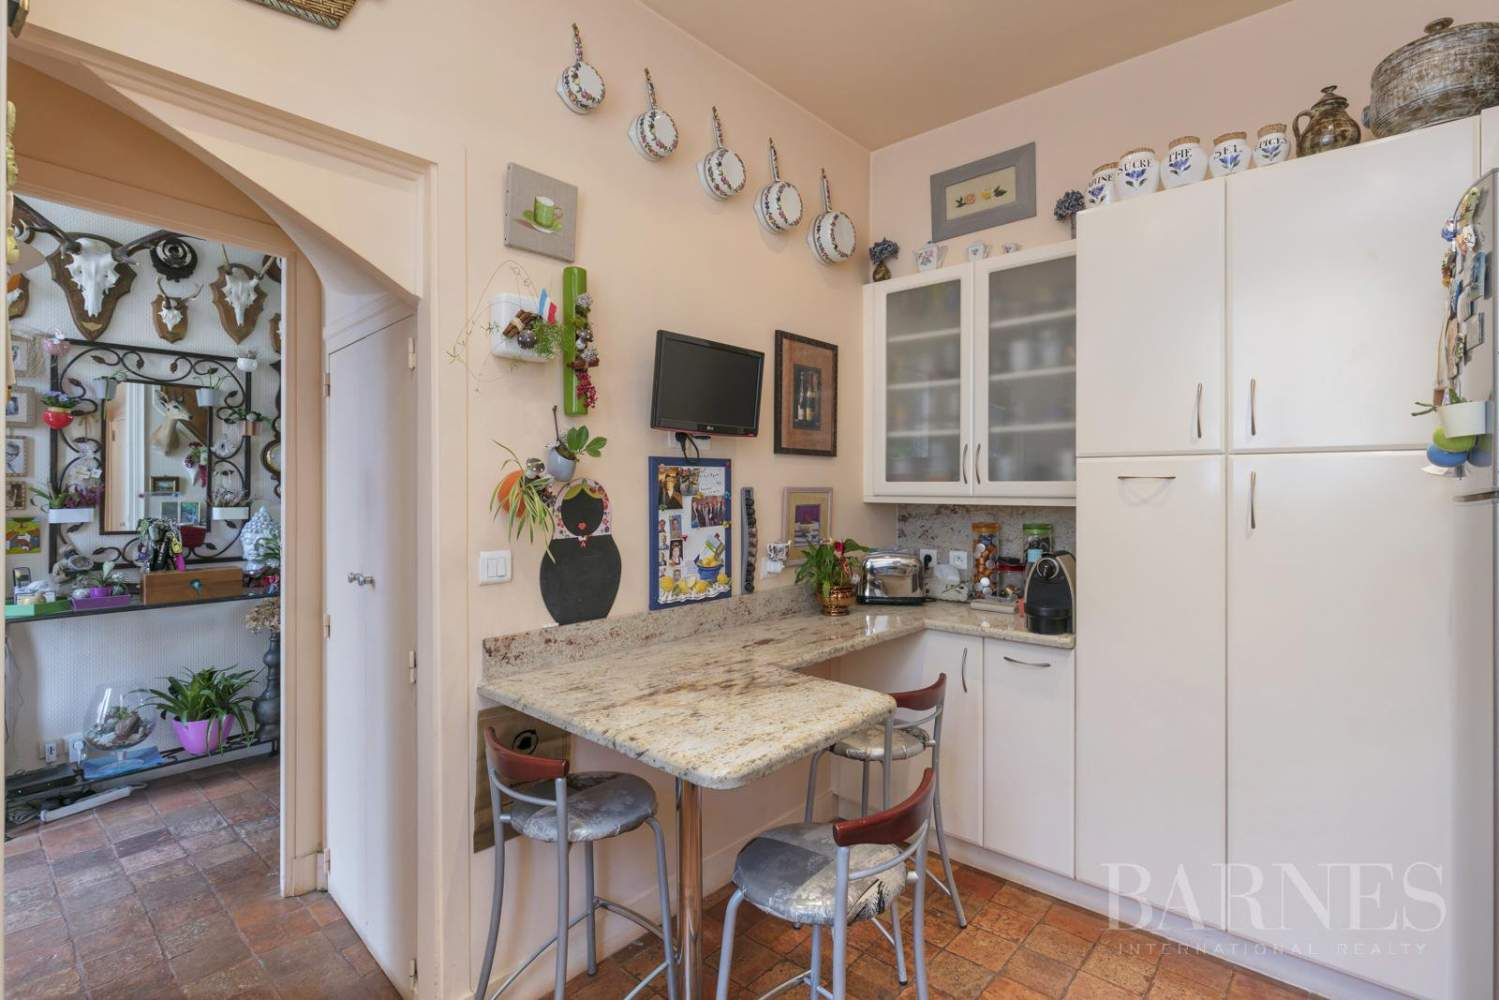 LE CHESNAY - PLATEAU ST ANTOINE 3,498 sq ft HOUSE with INDEPENDENT STUDIOS - GARAGE picture 4